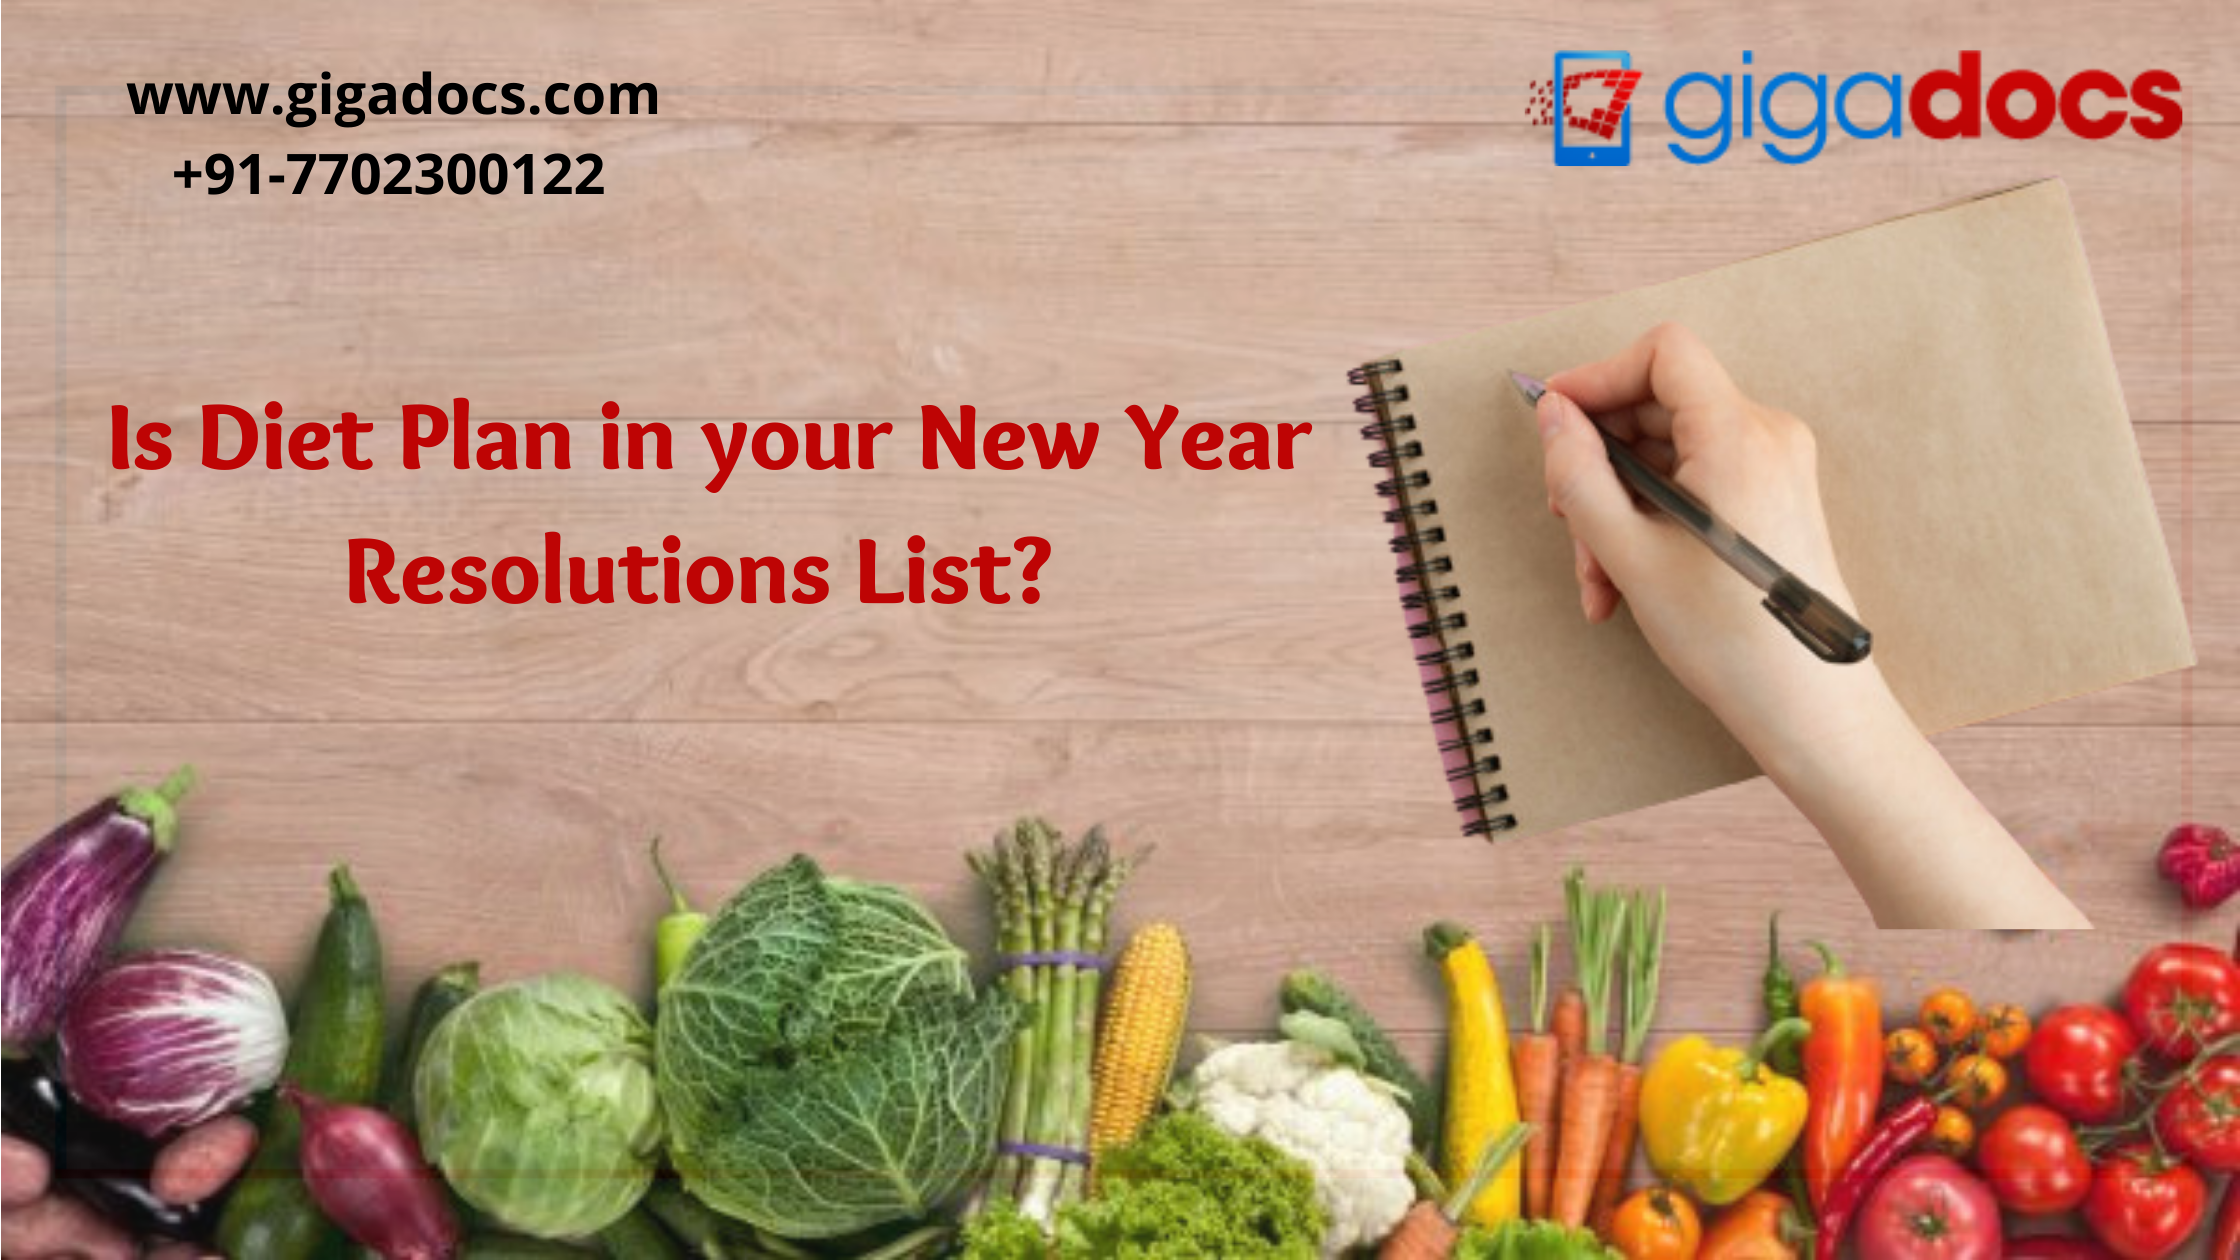 Diet Plan and Health Tips for the New Year